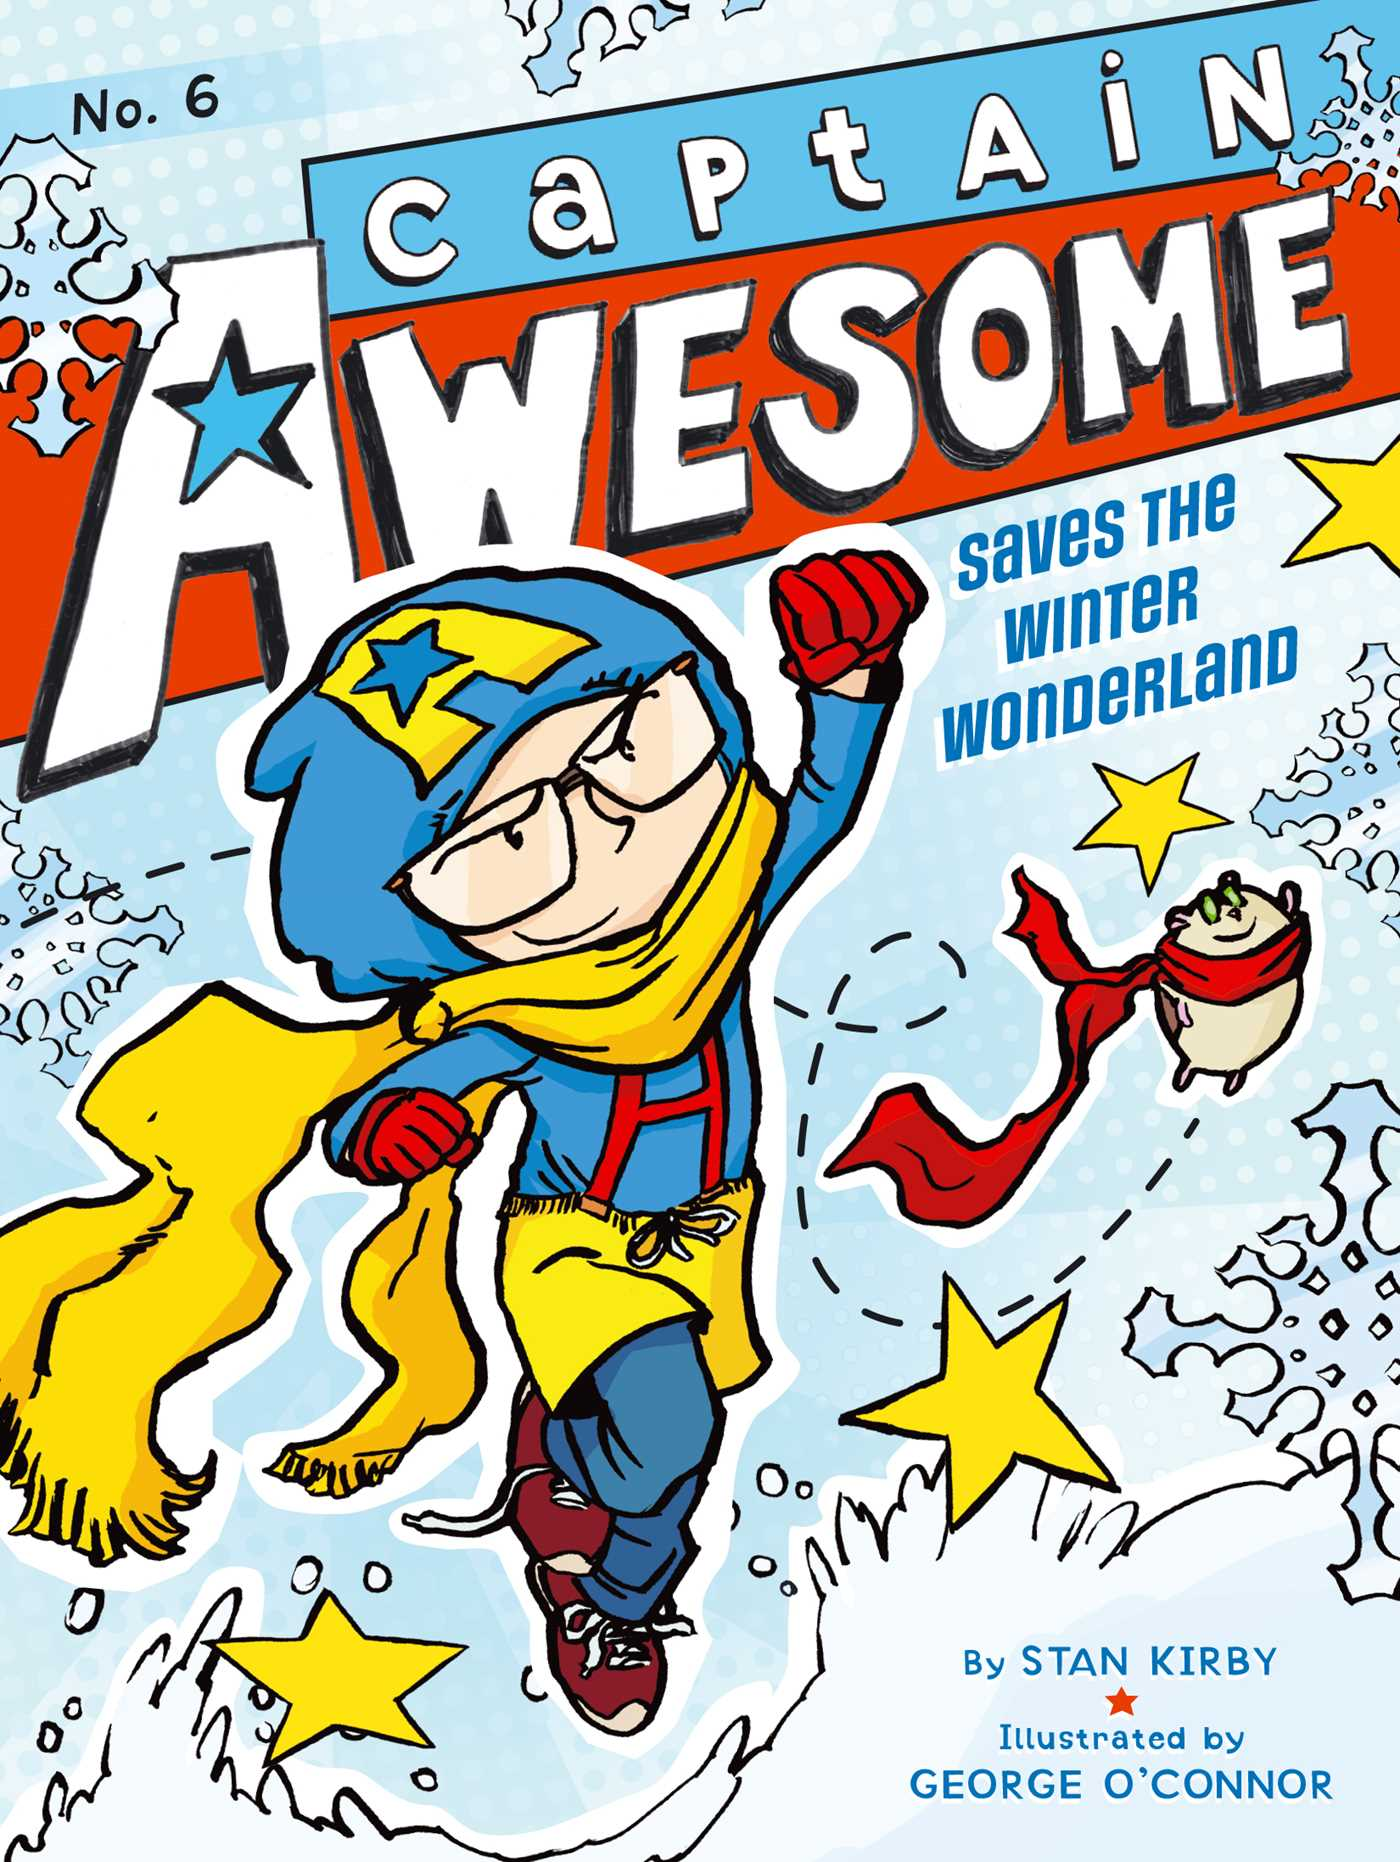 Captain-awesome-saves-the-winter-wonderland-9781442443365_hr